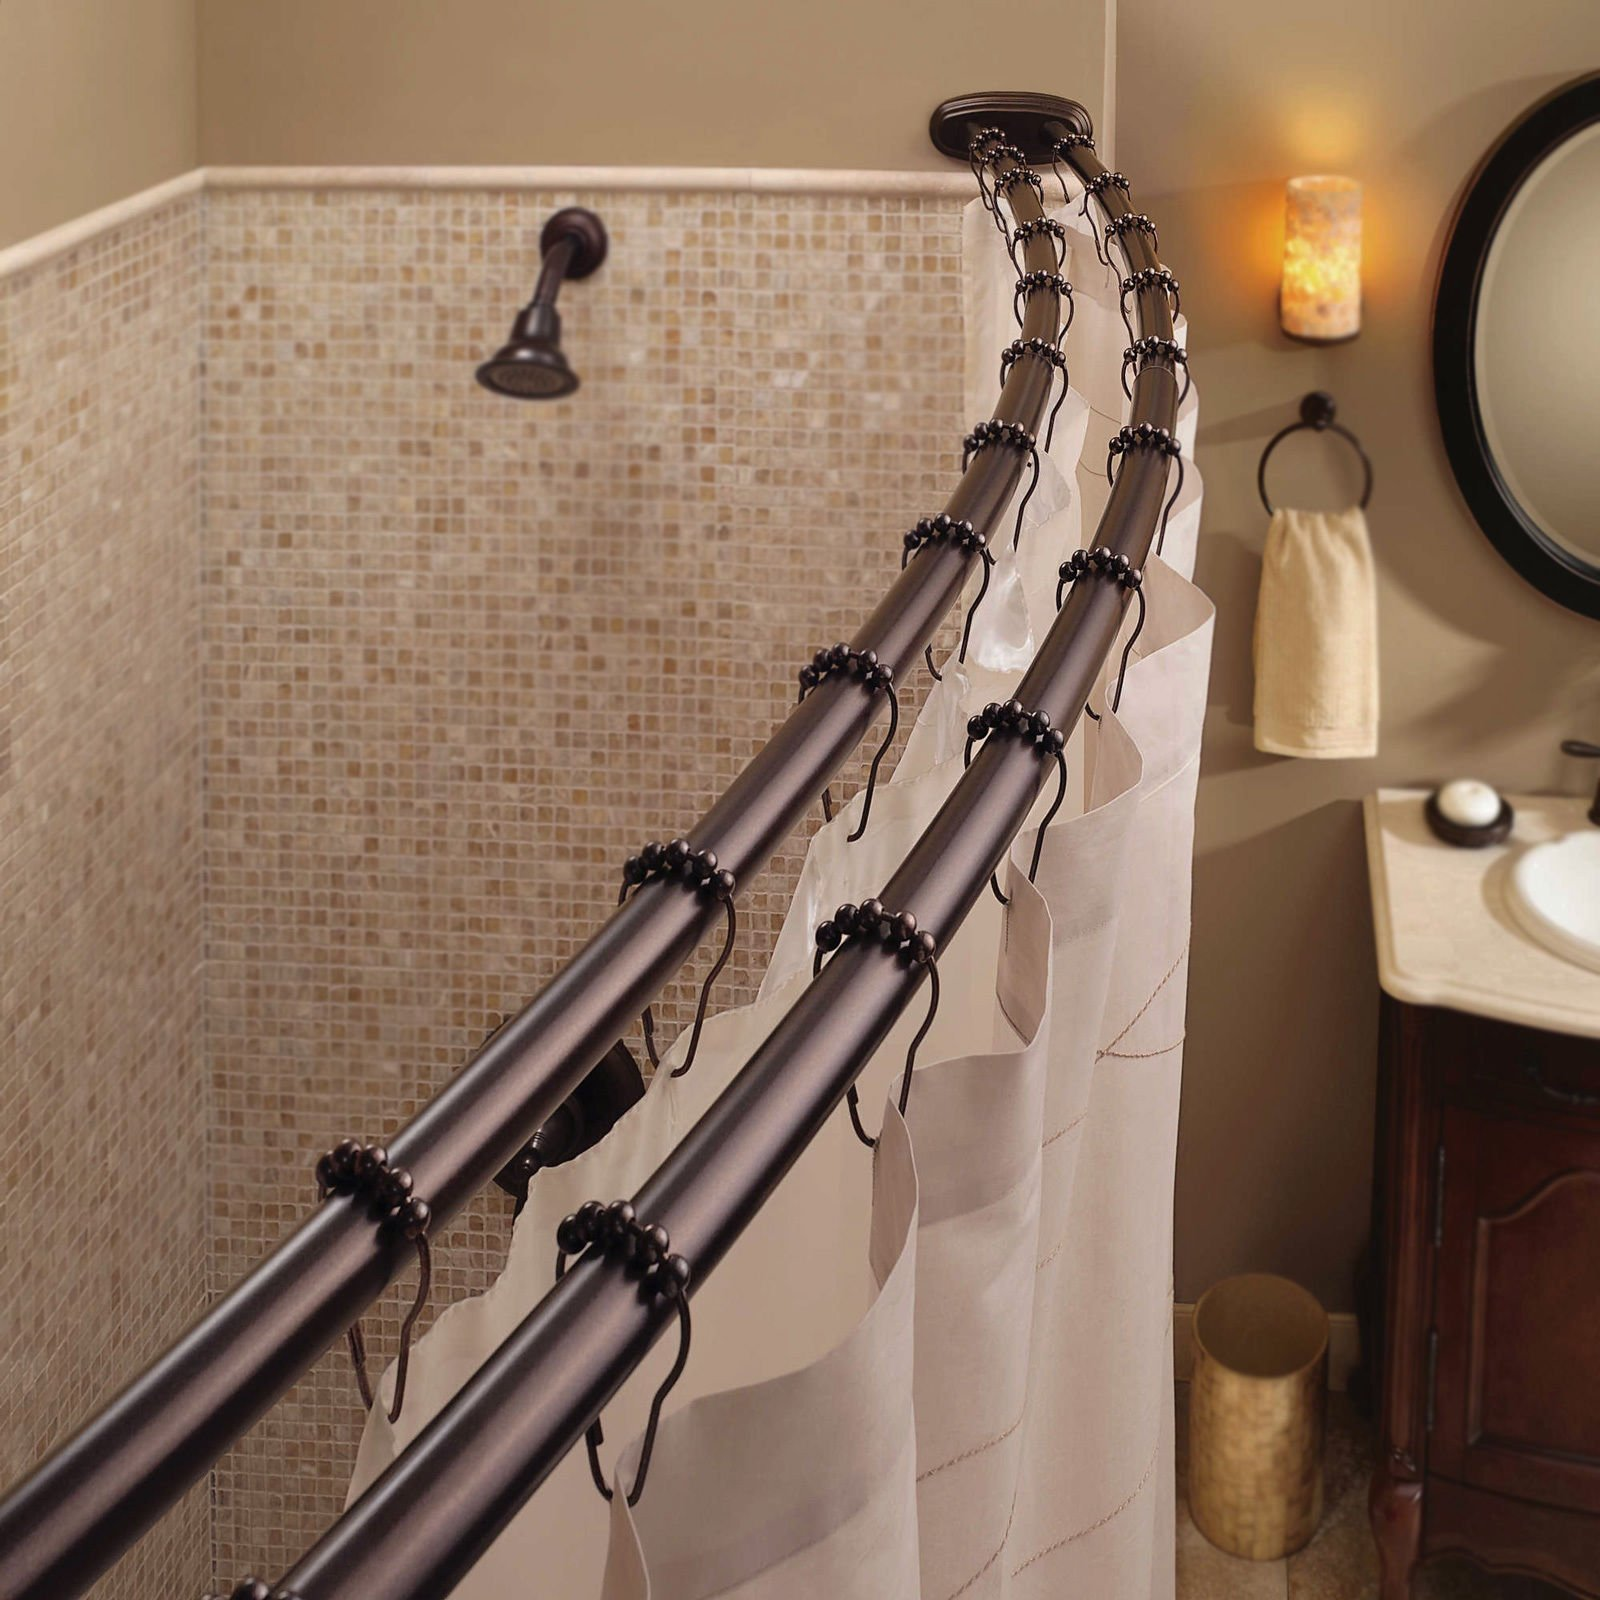 Double Curved Shower Curtain Rod Adjustable Crescent Fixture, Oil Rubbed Bronze by Brand-new